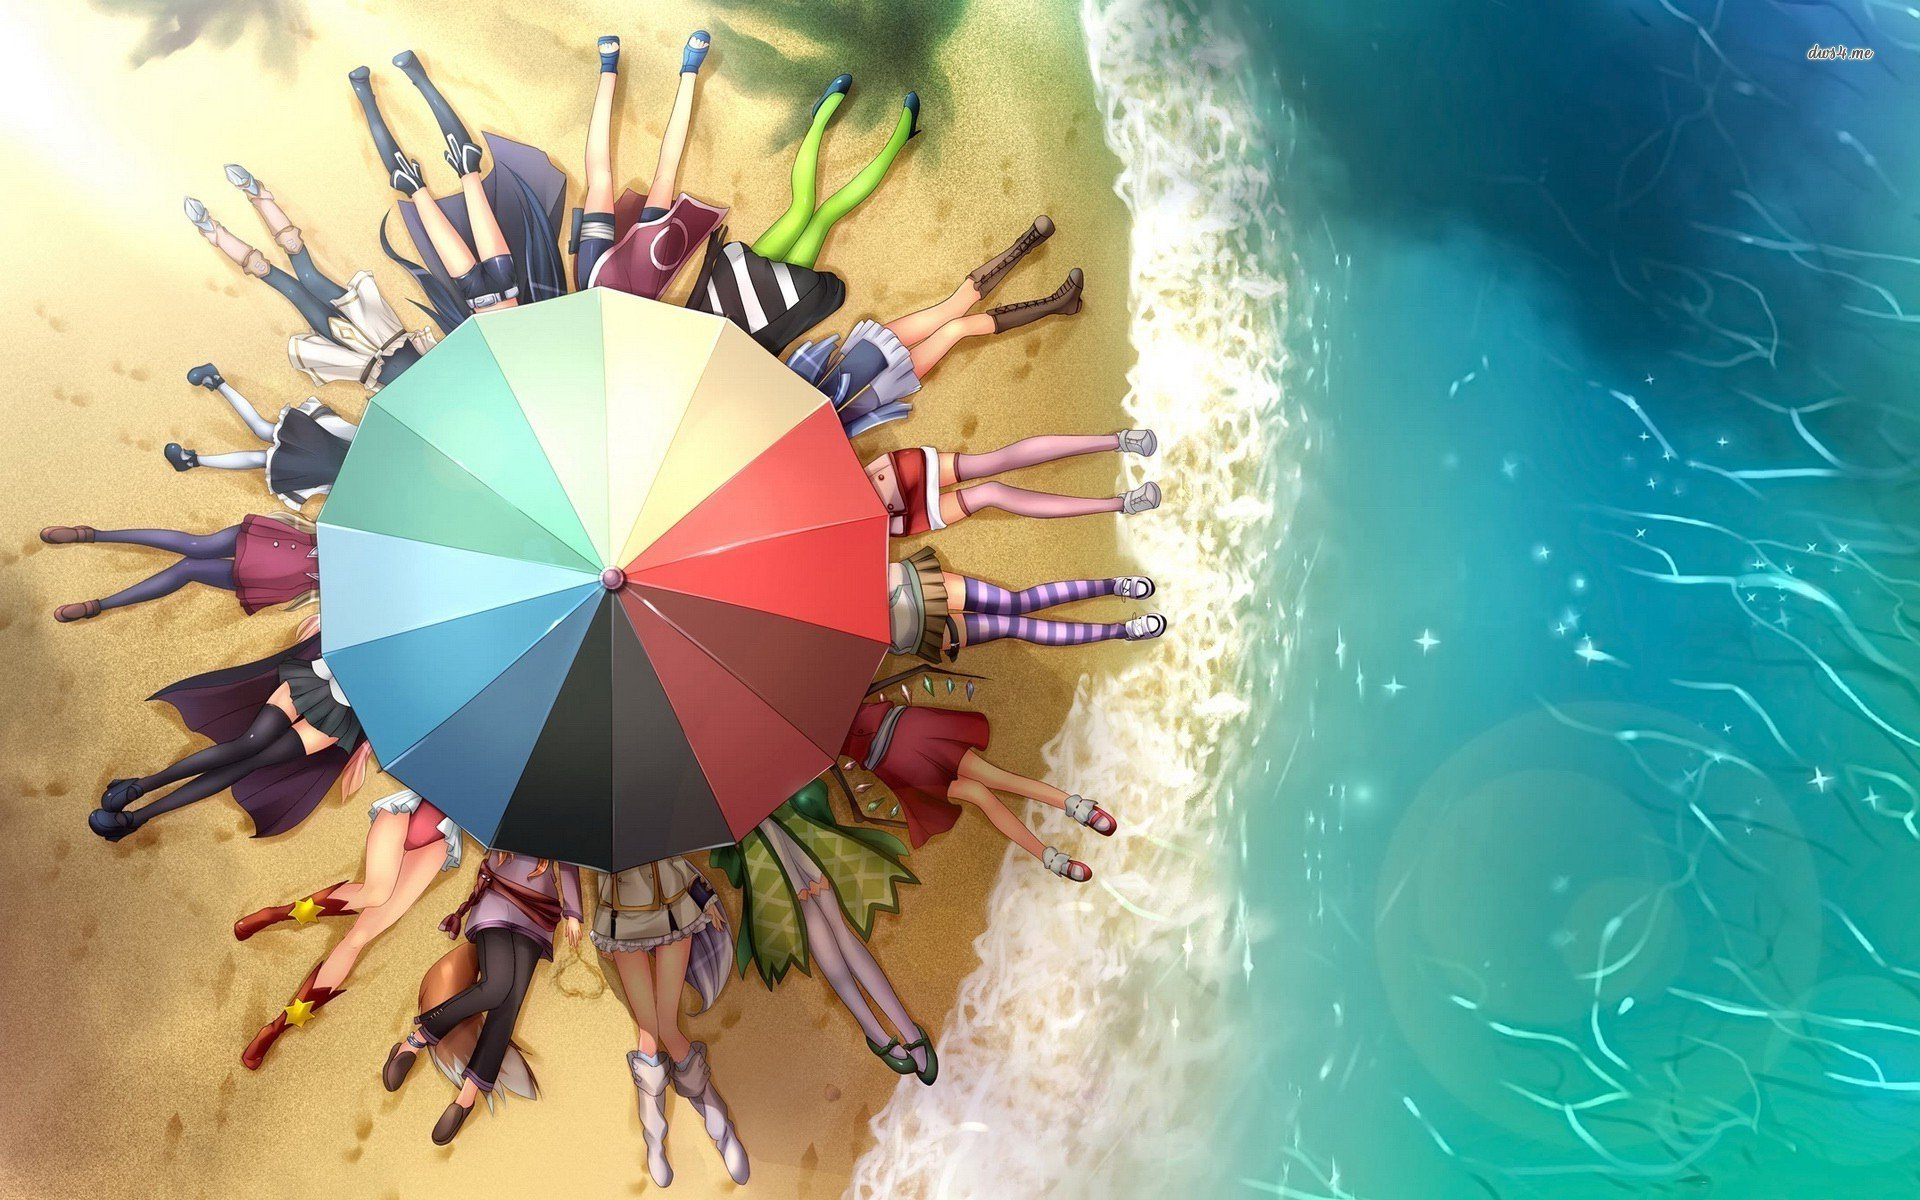 Anime Characters Under The Beach Umbrella Wallpaper